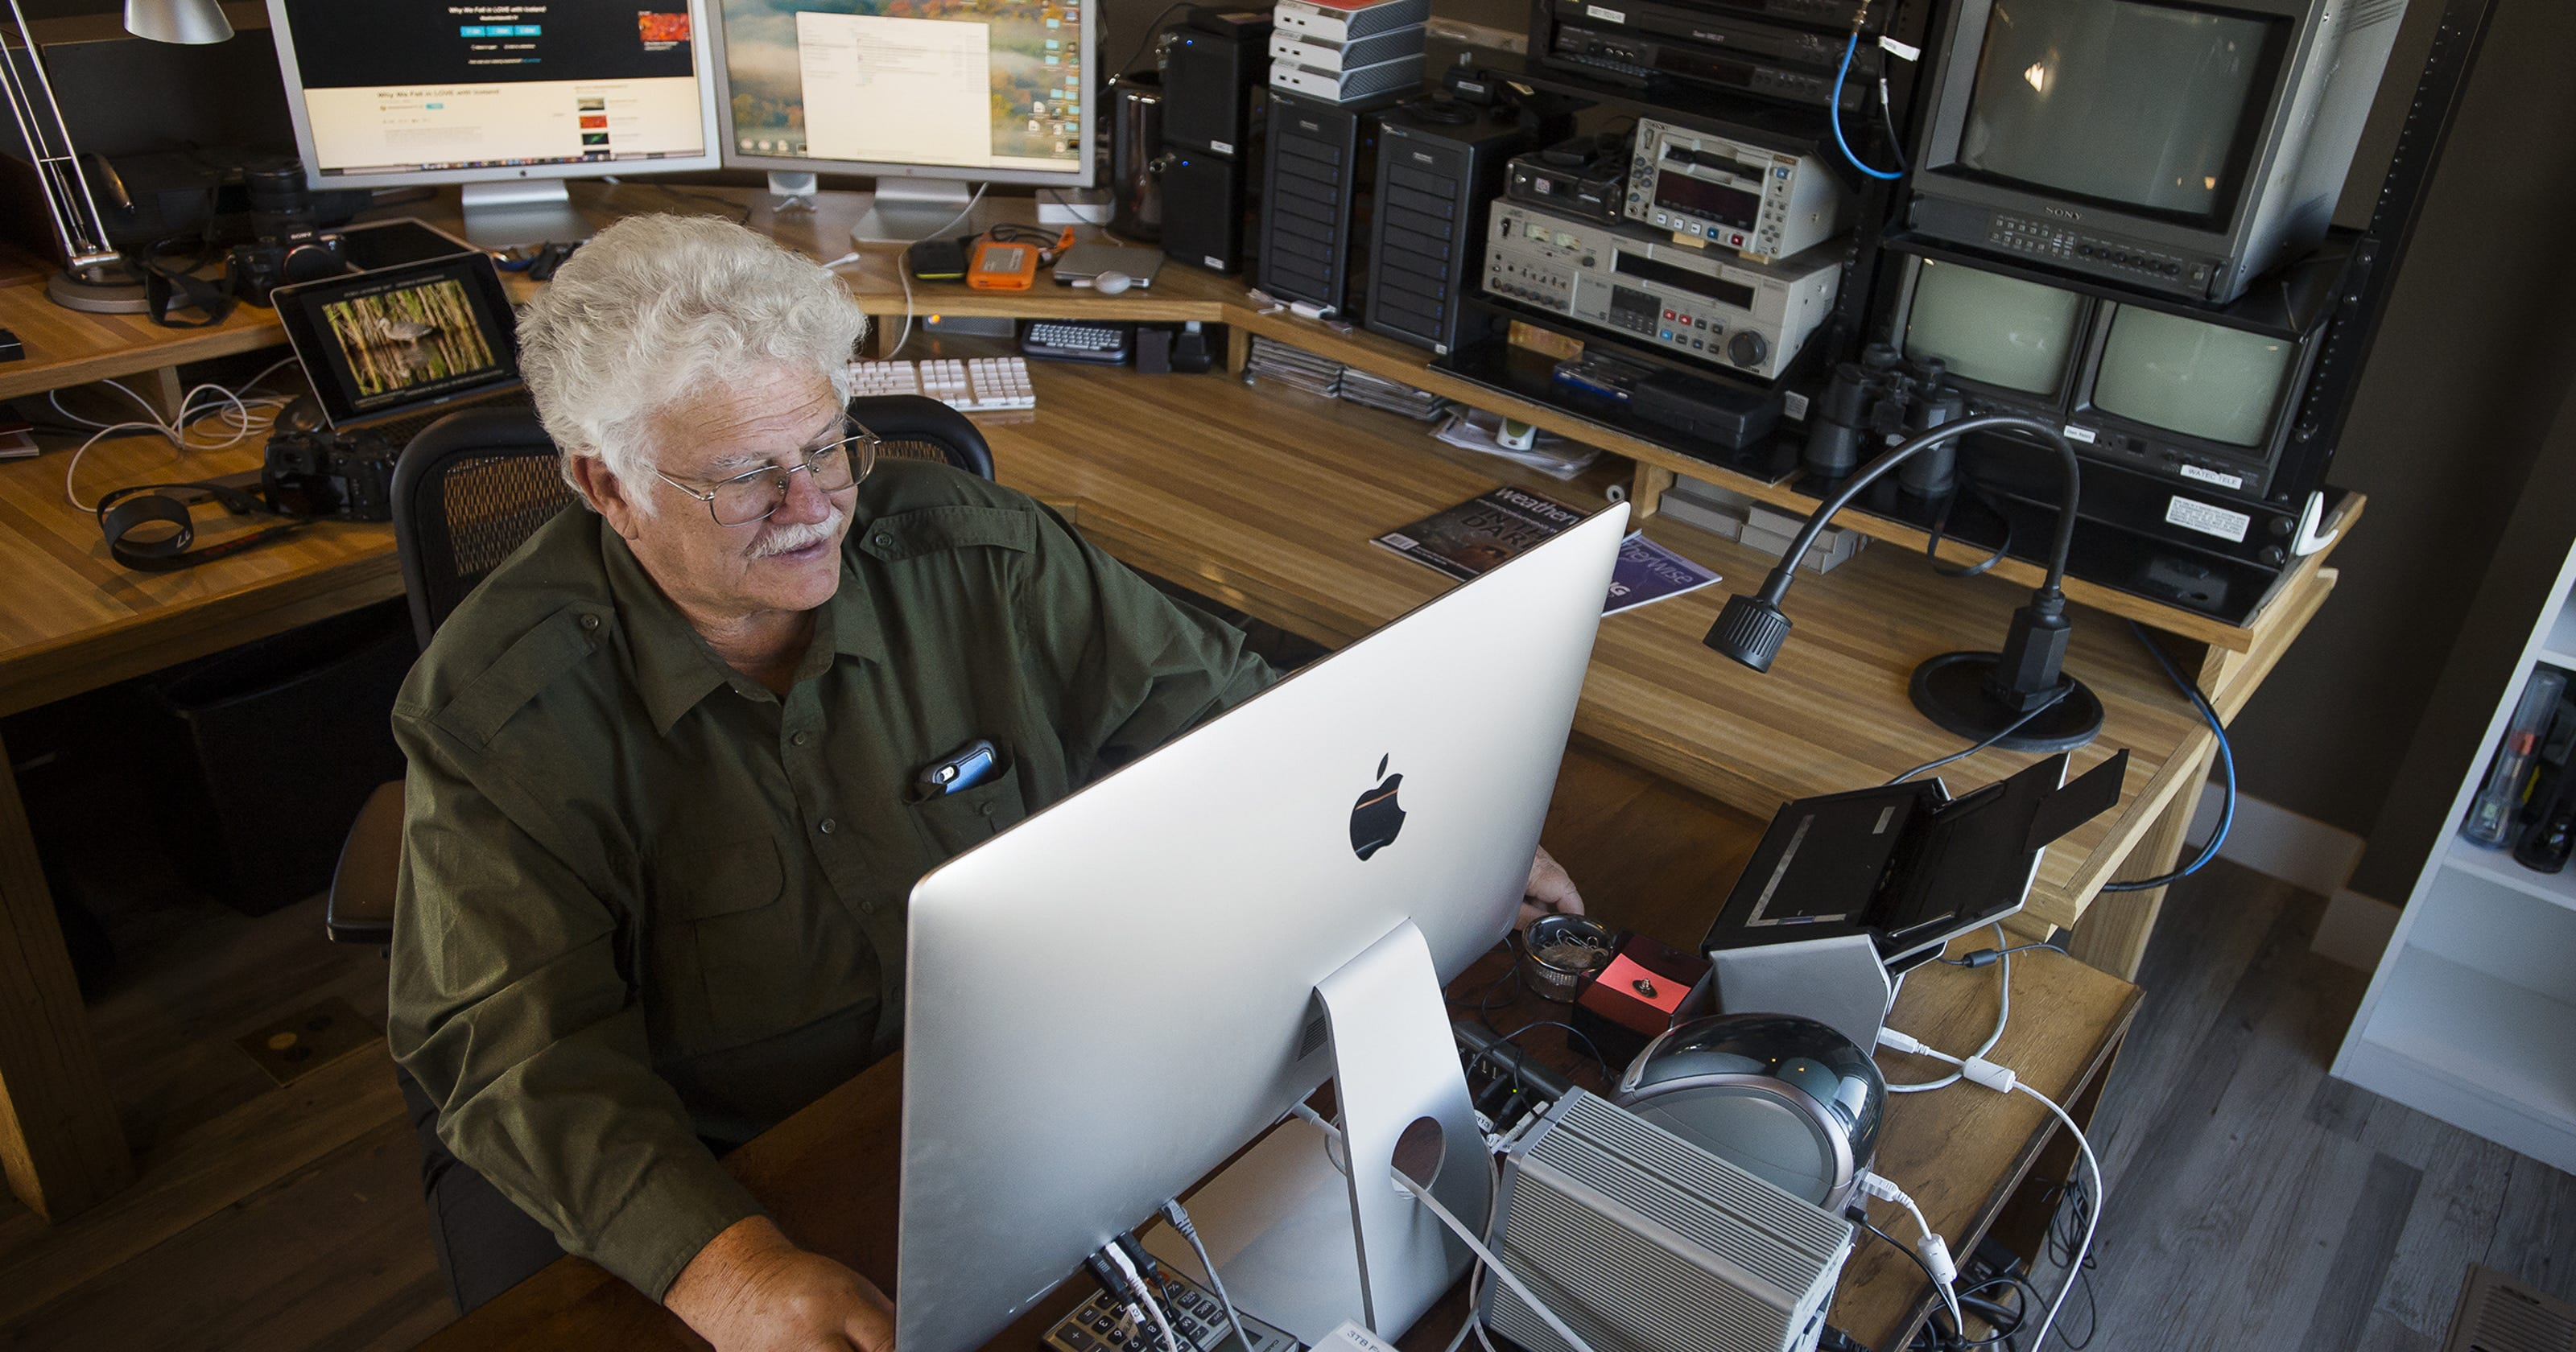 Fort Collins hopes to copy high-speed internet success